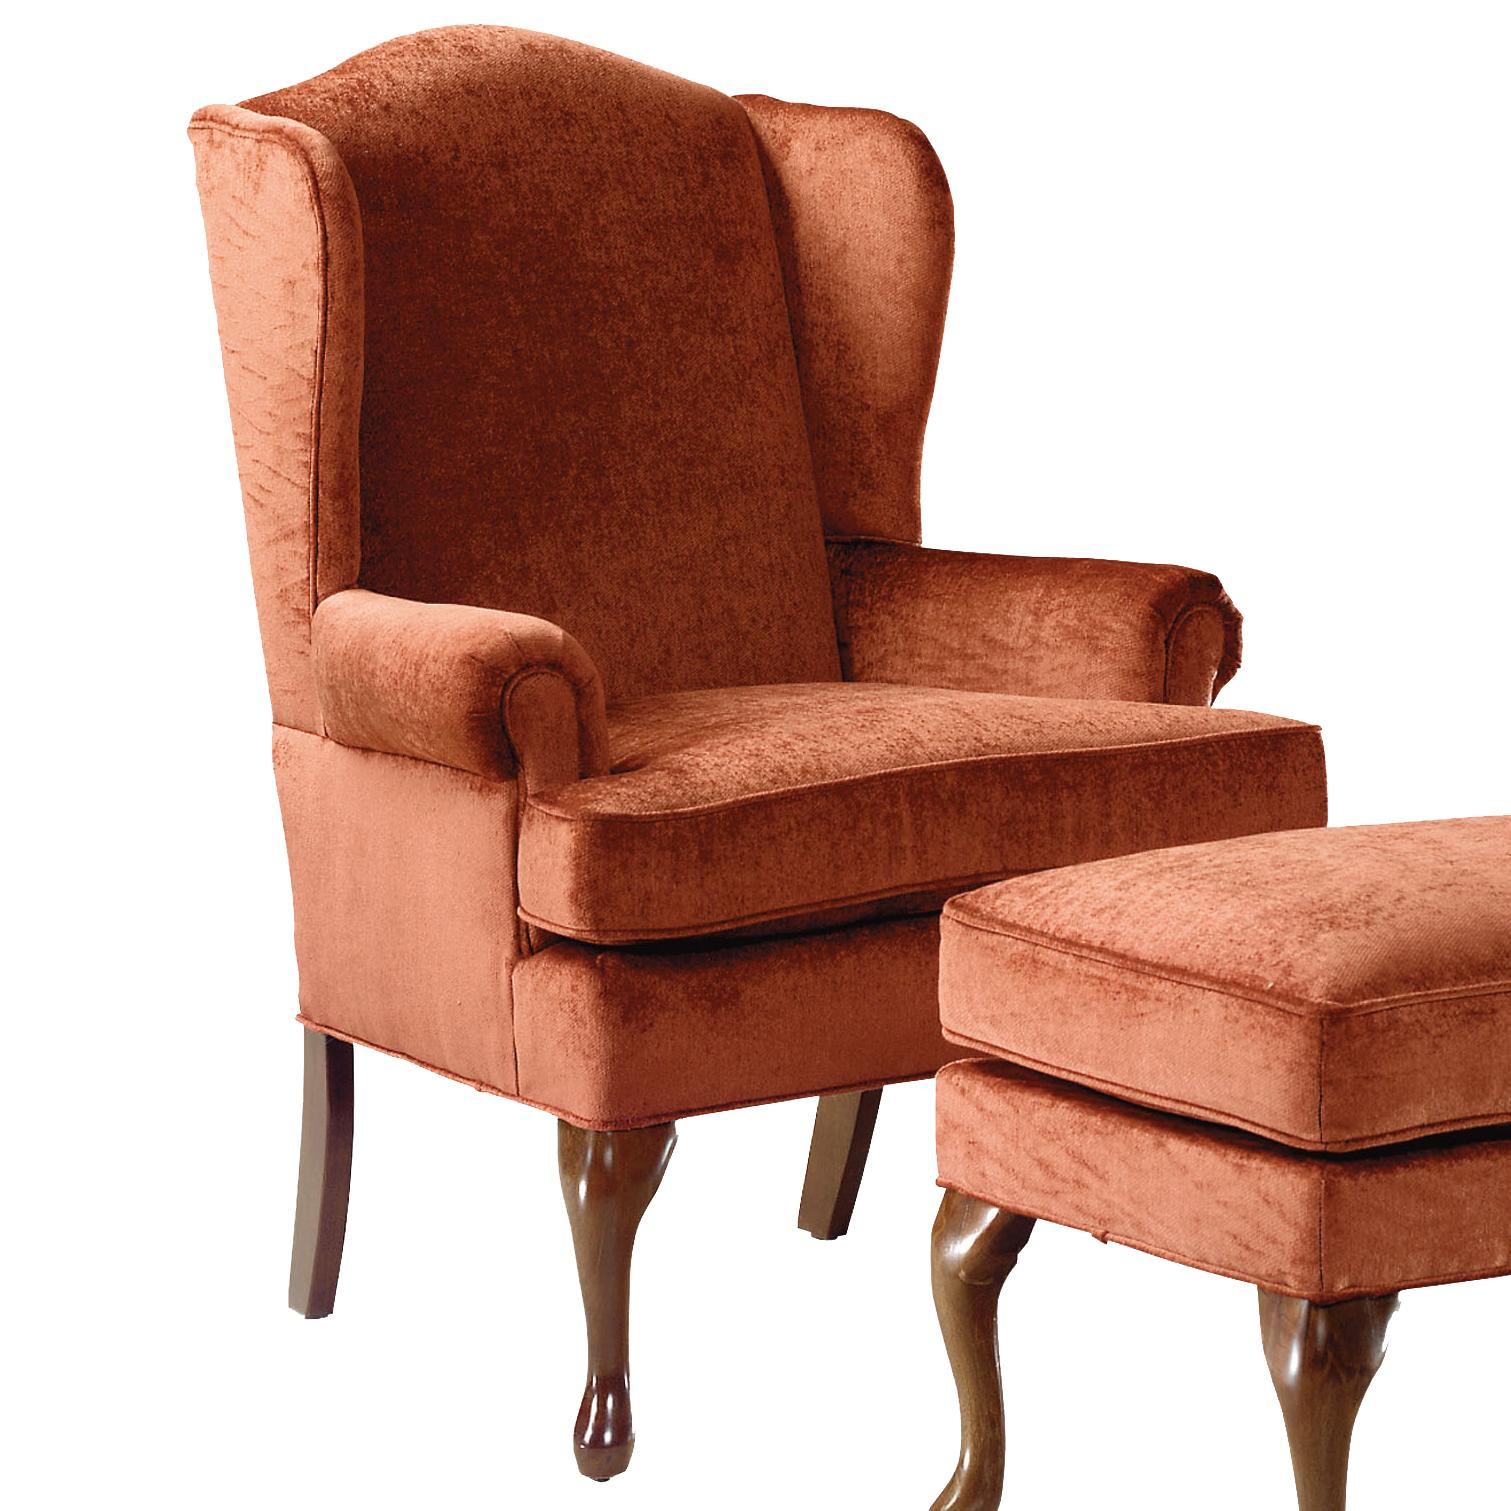 Fairfield Chairs Wing Chair - Item Number: 5118-01